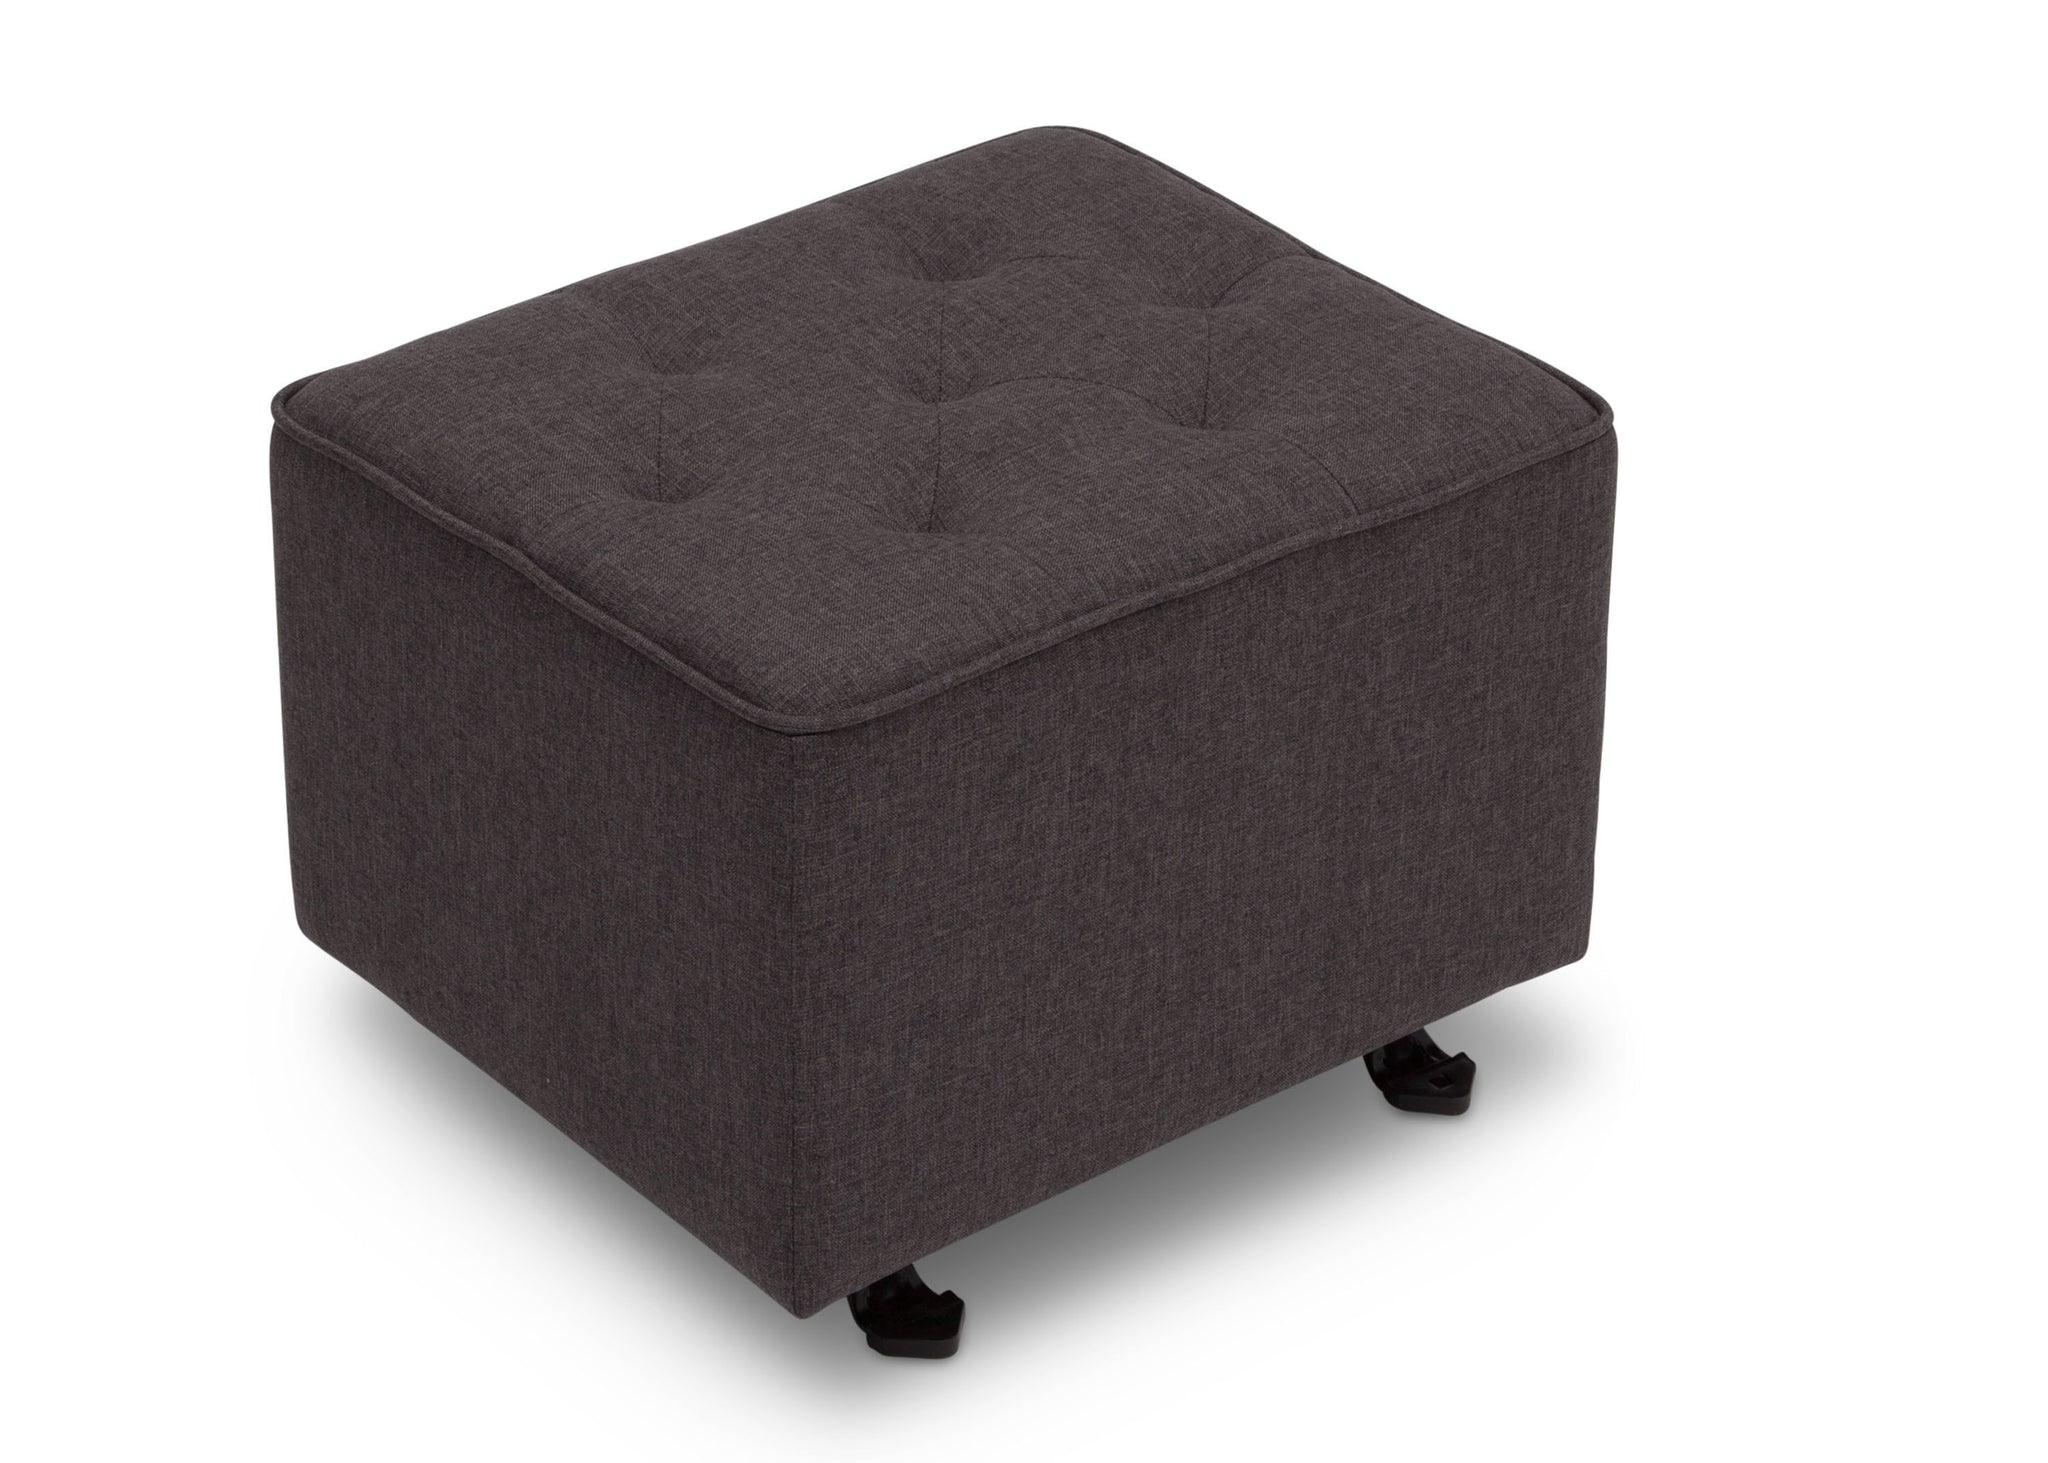 Delta Children Charcoal Grey (931) Emma Diamond Tufted Nursery Gliding Ottoman, side view, c2c